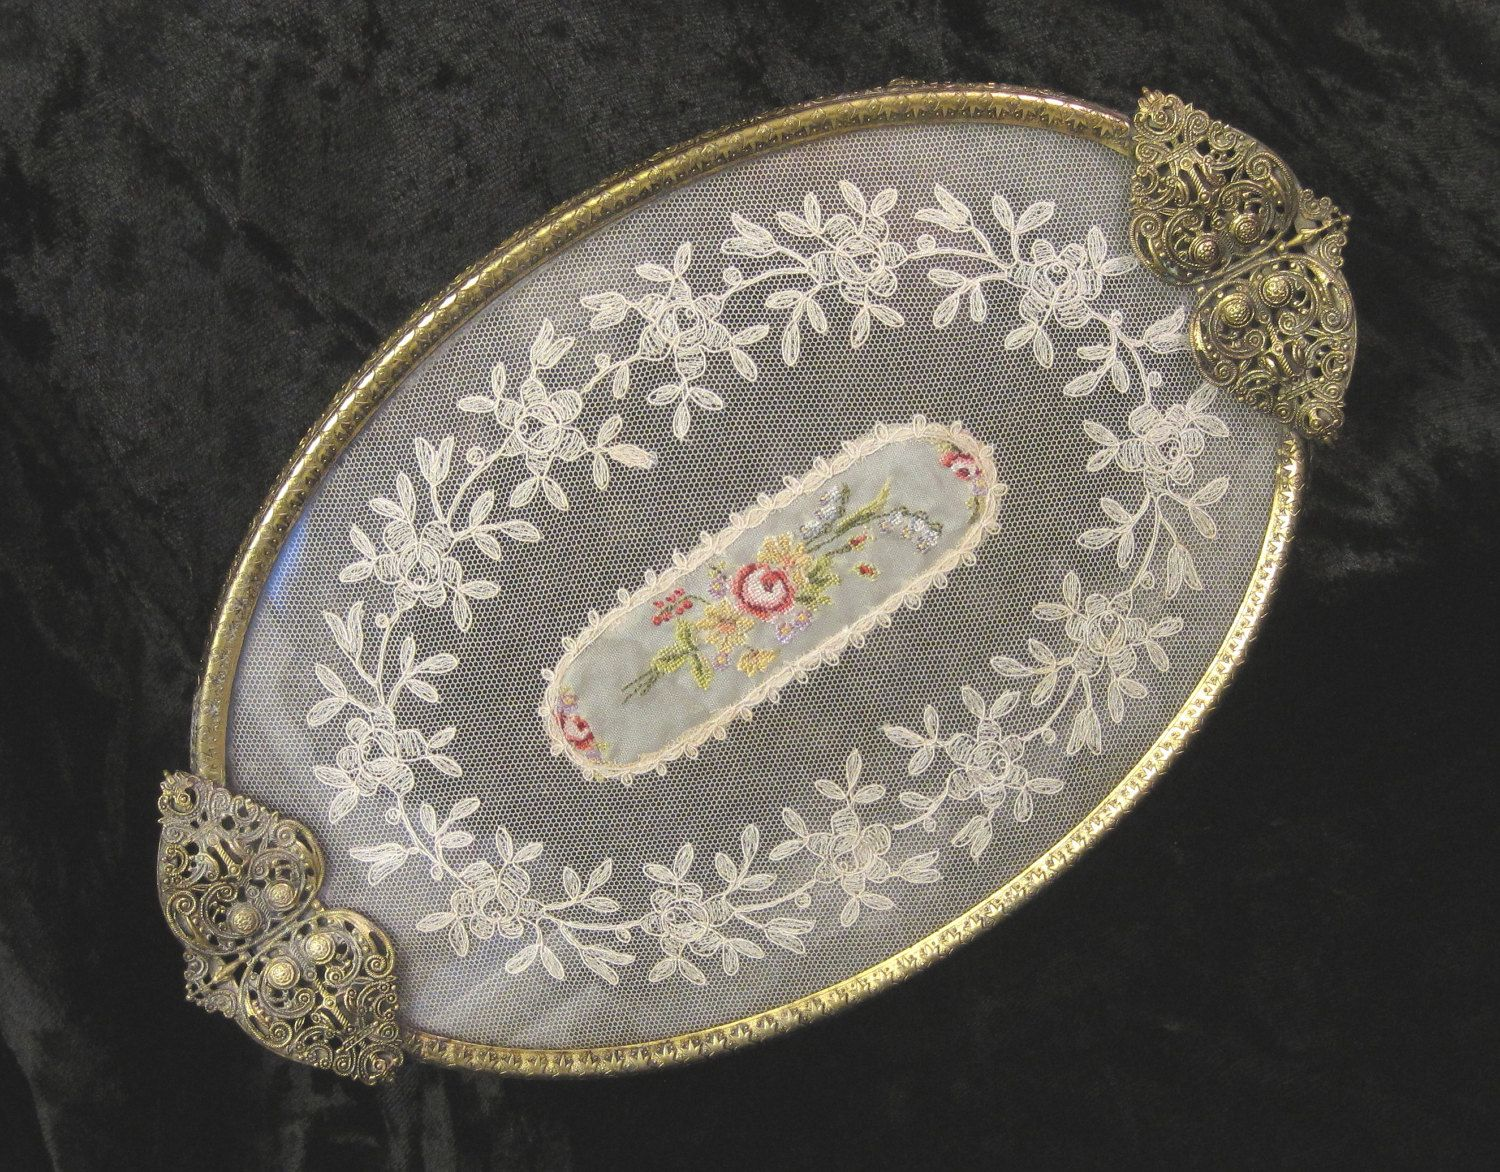 Antique vanity tray with lace insert - Brass Filigree Dressing Table Vanity Tray With Petit Point Embroidery And Lace Insert By Thewhistlingman On